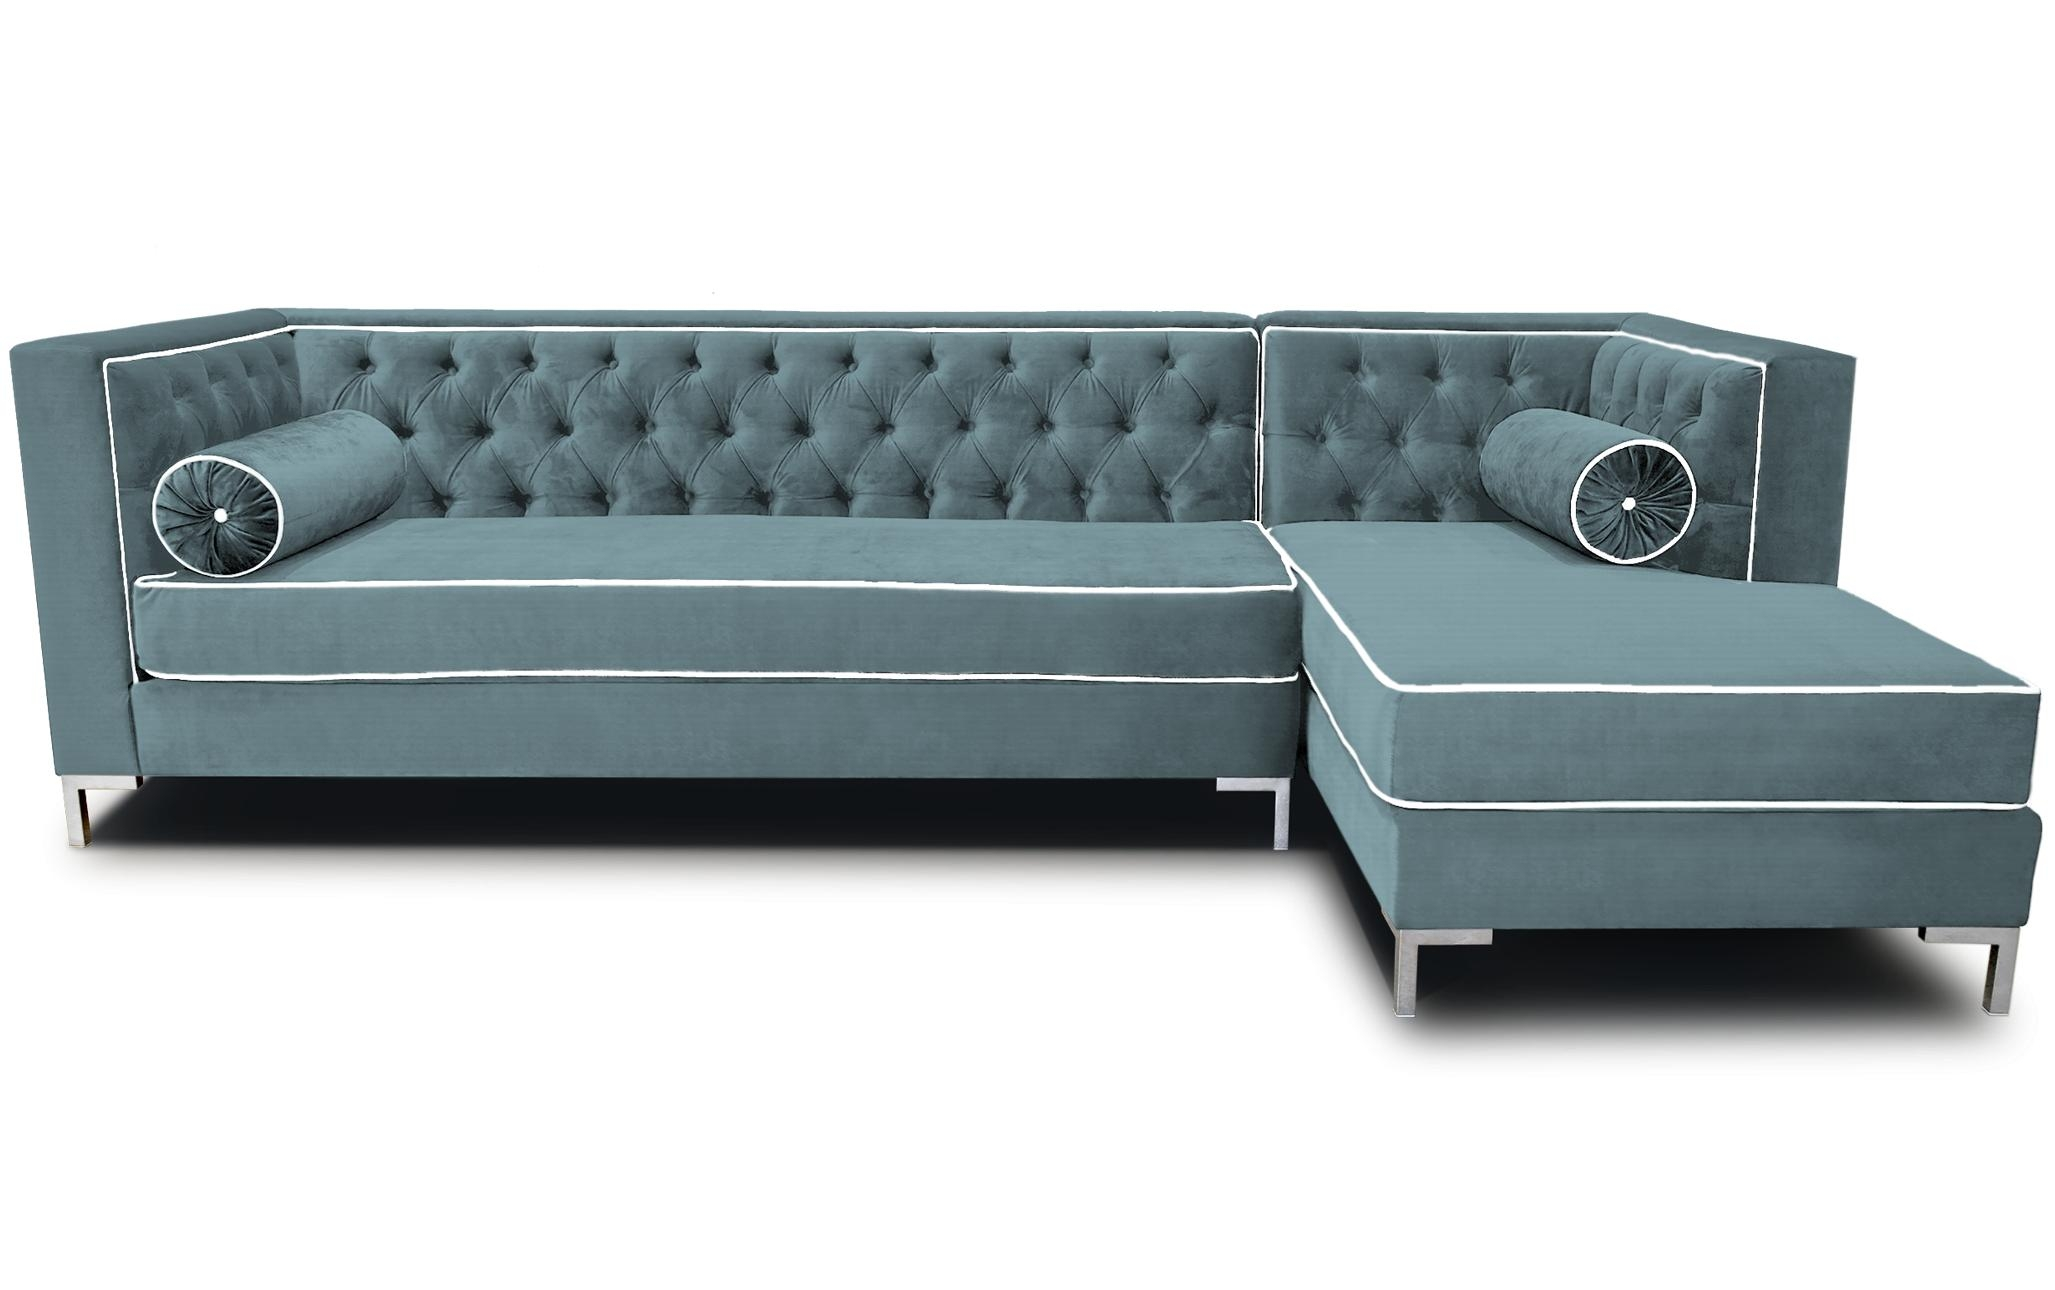 Sofas Center : 41 Stunning Tufted Sleeper Sofa Photo Design Tufted With Tufted Sleeper Sofas (View 7 of 20)